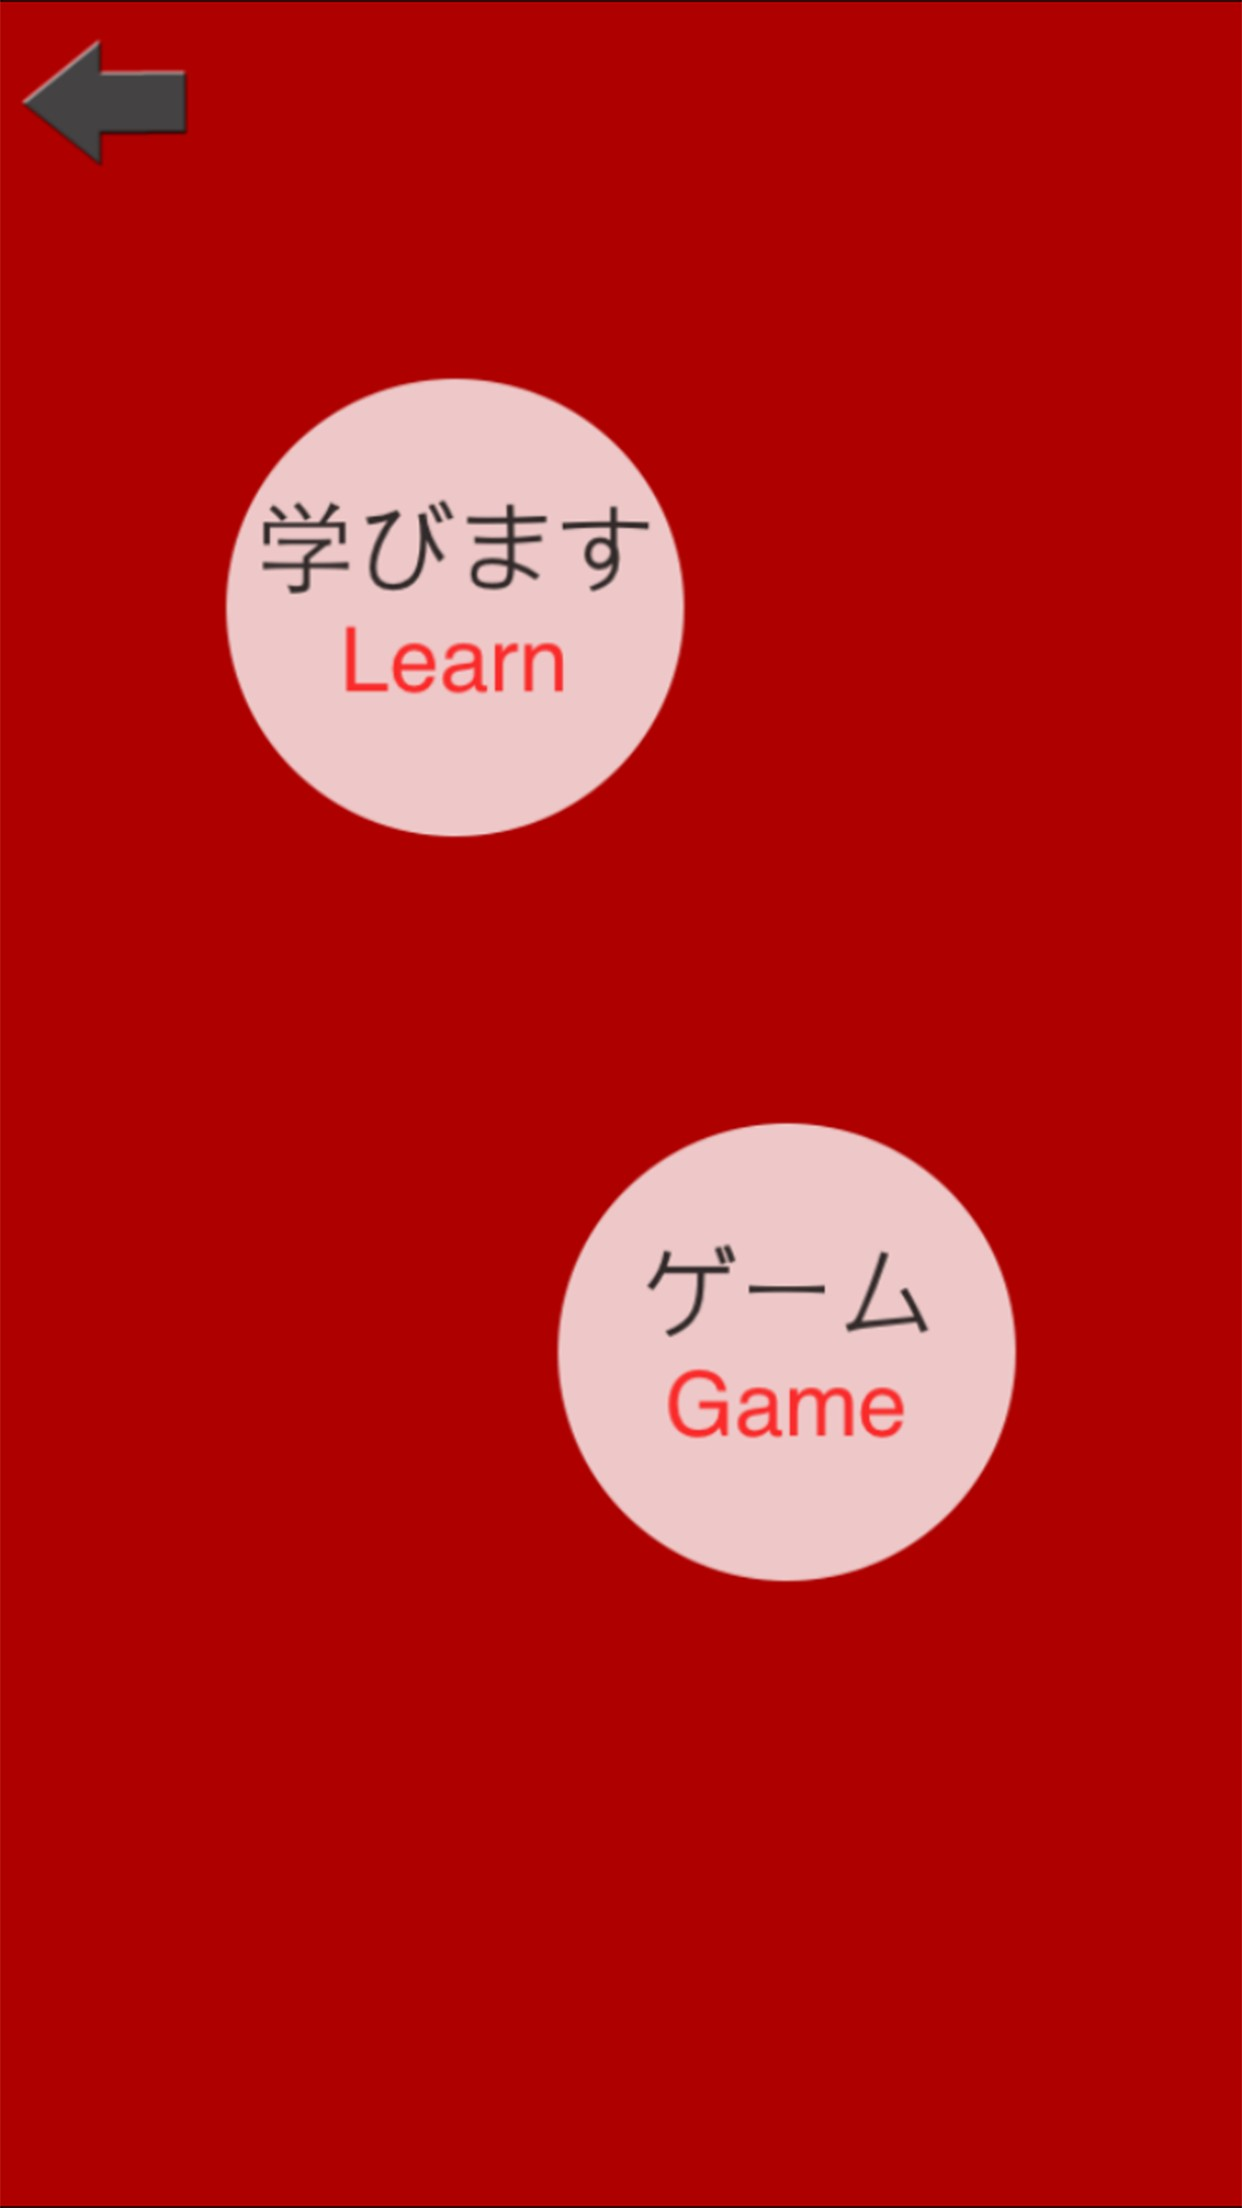 Learn Japanese with cards - Hiragana, Katakana and Romaji